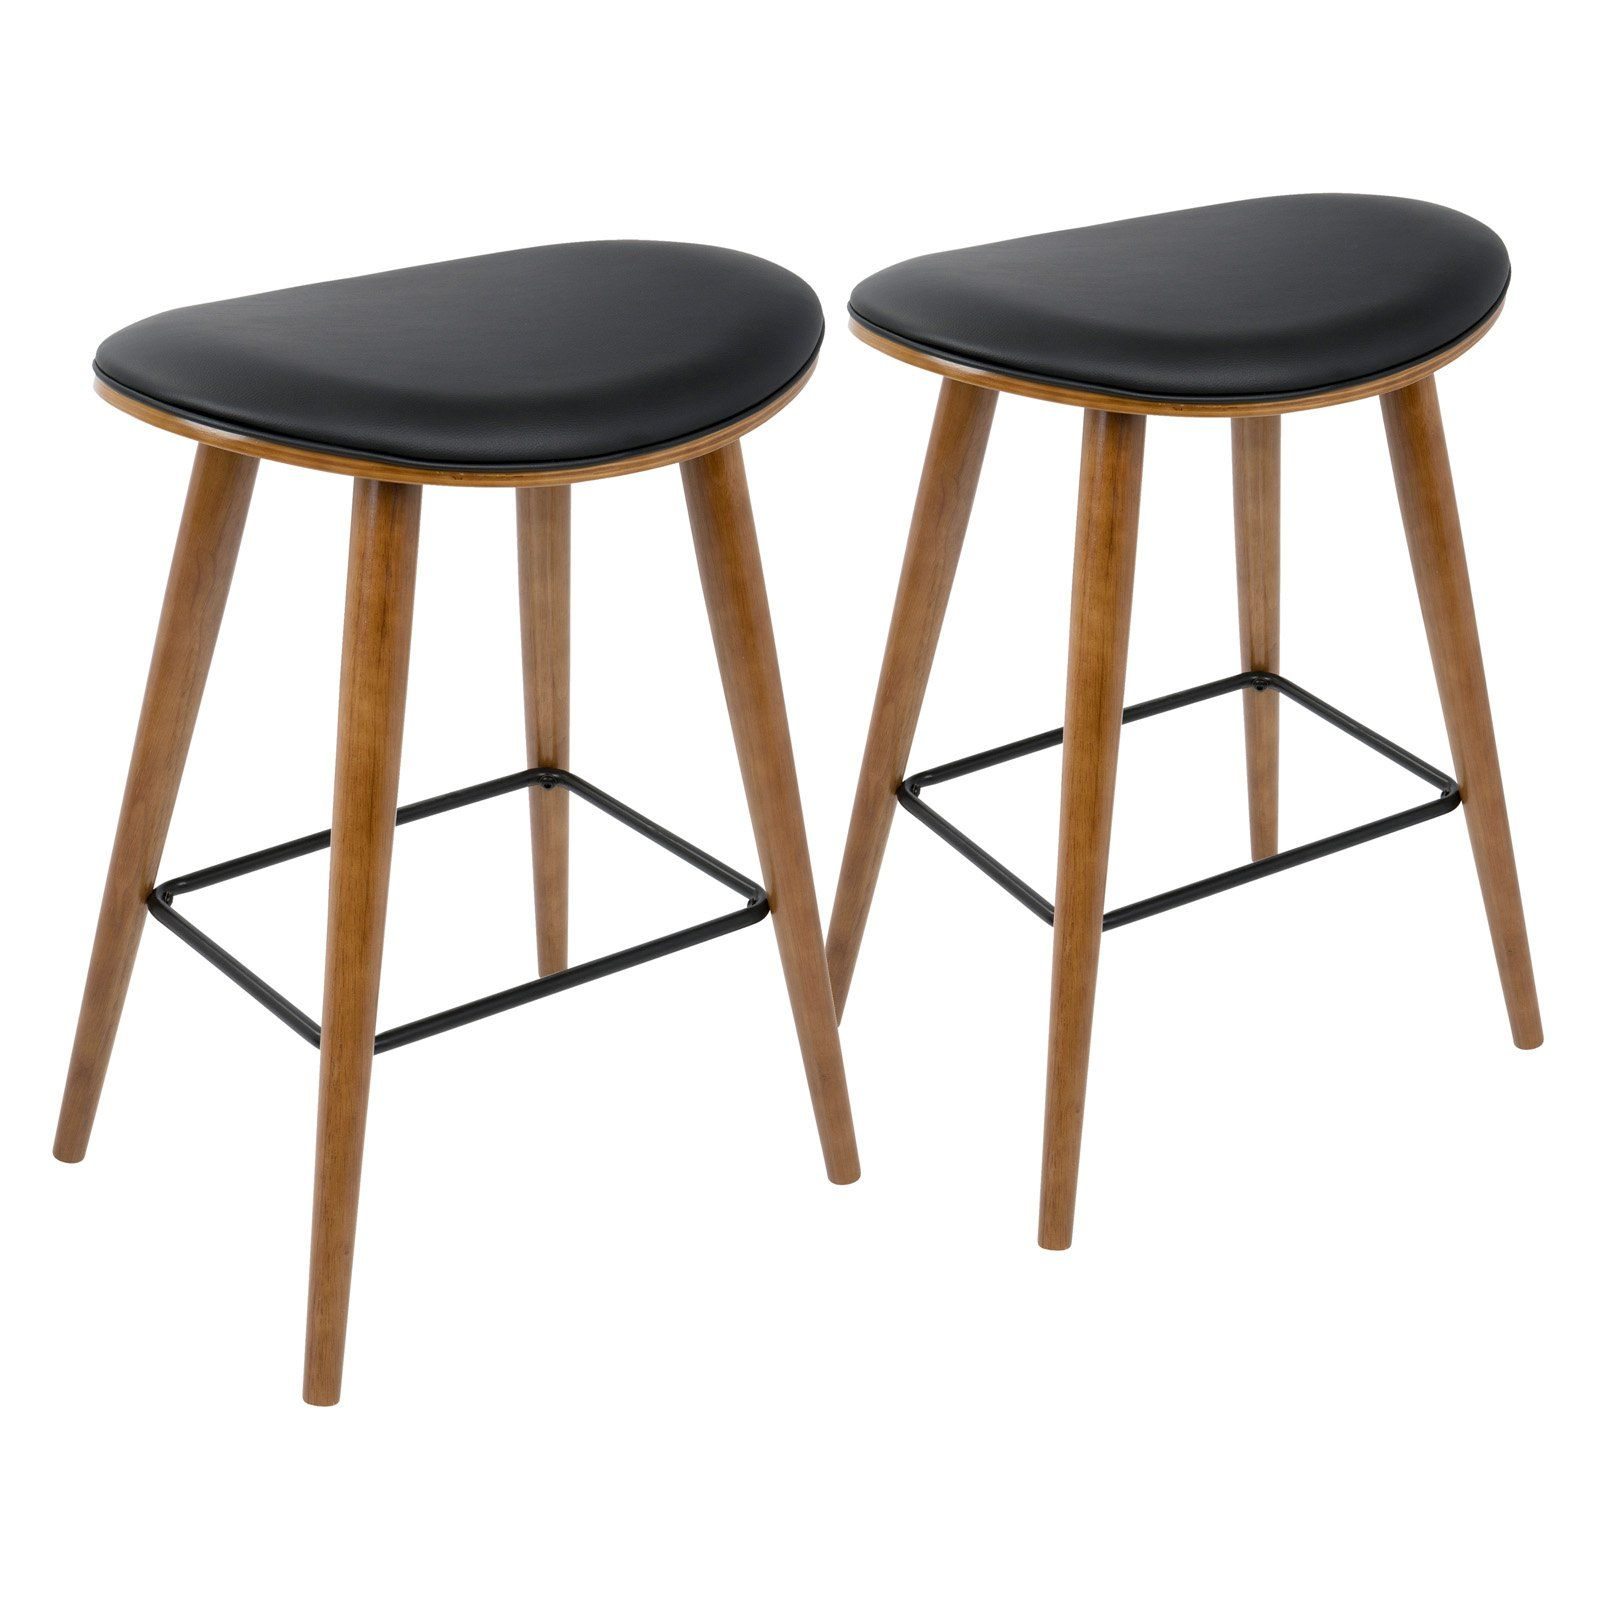 Lumisource Saddle 25 75 In Mid Century Modern Counter Stool Set